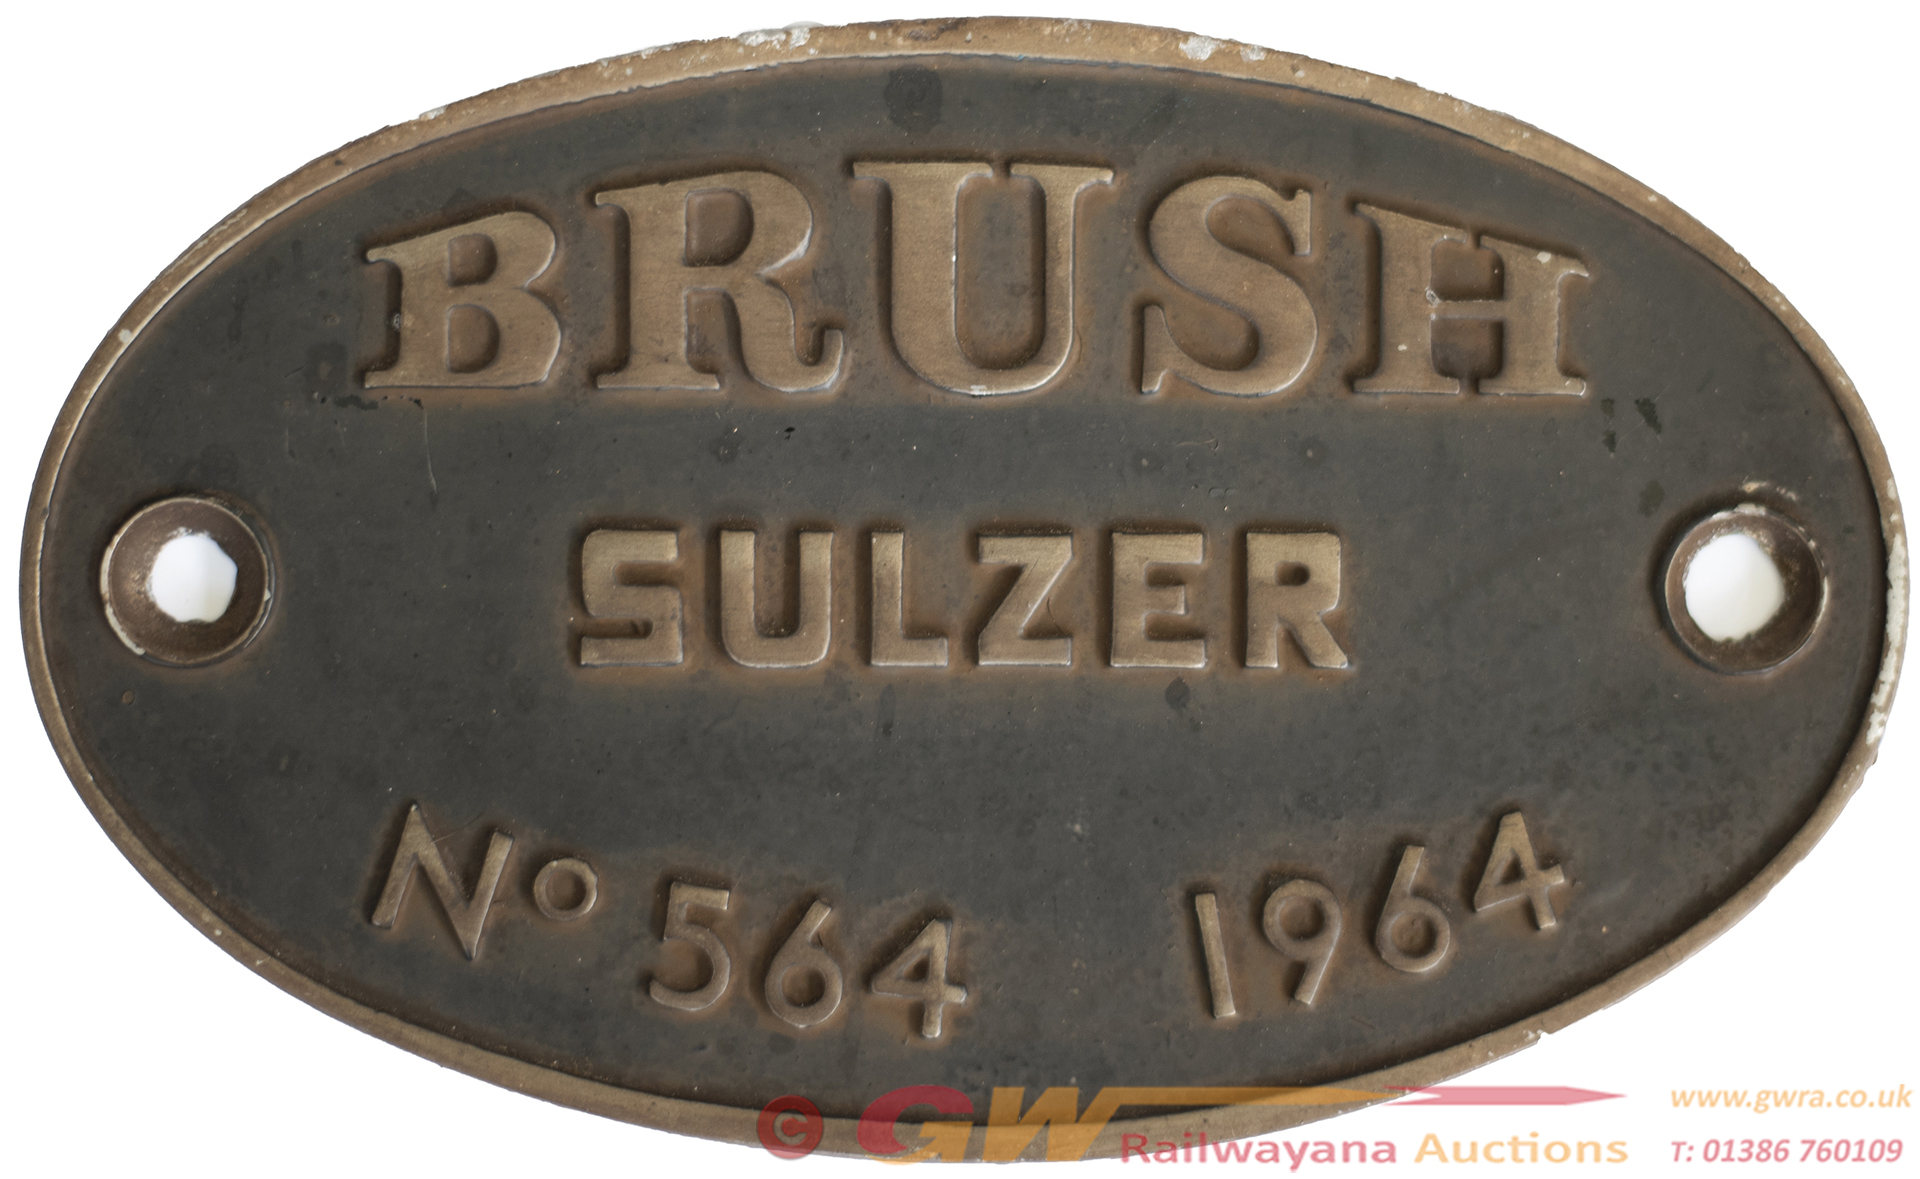 Worksplate BRUSH SULZER no564 1964 Ex British